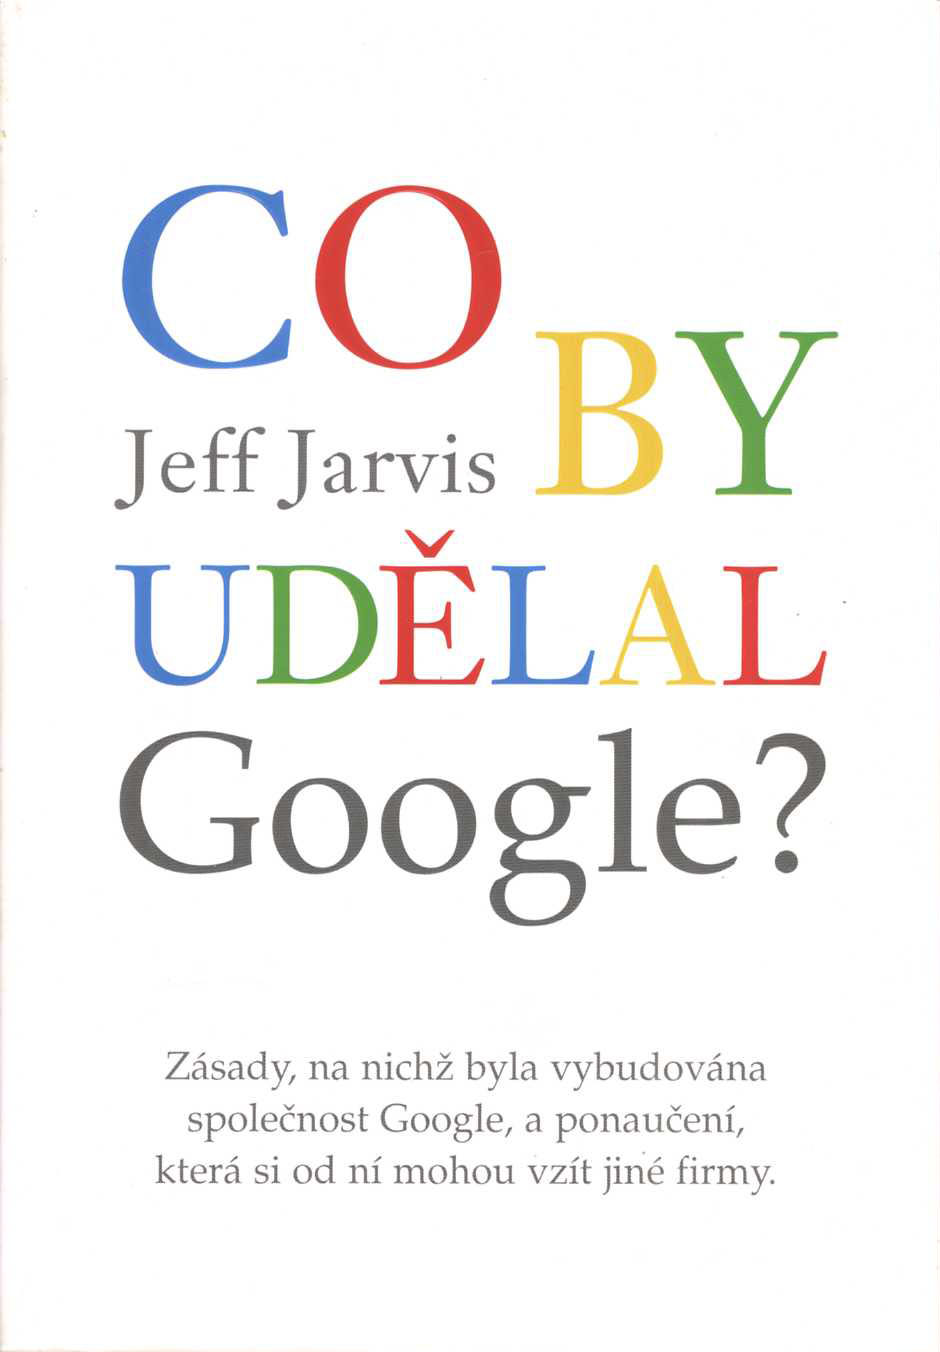 Co by udělal Google? (Jeff Jarvis)